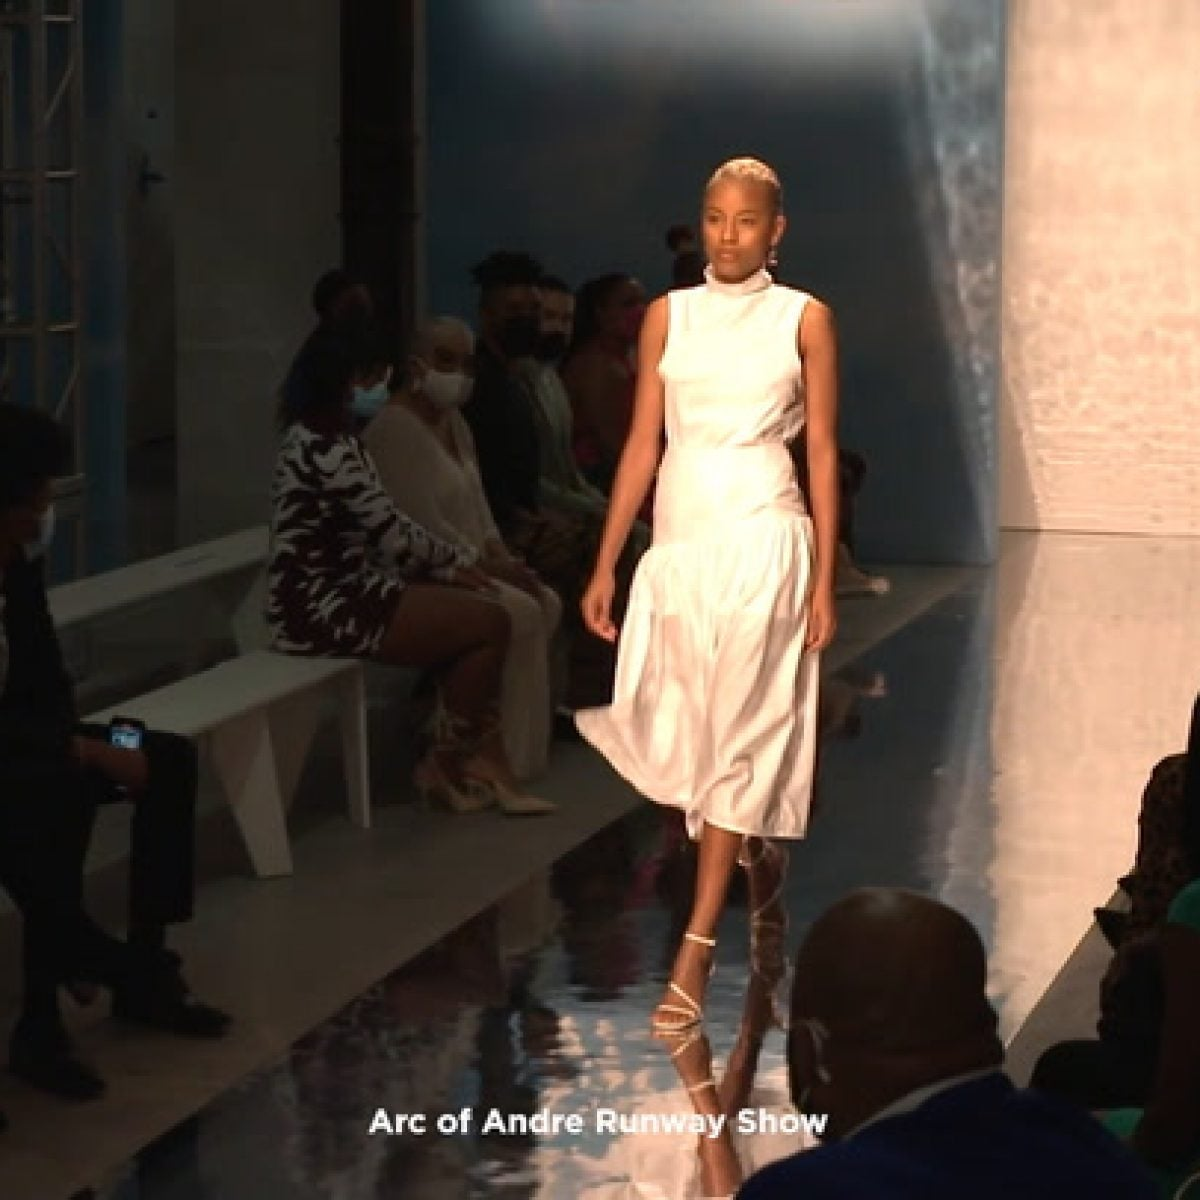 Essence Fashion House | Arc of Andre Runway Highlights